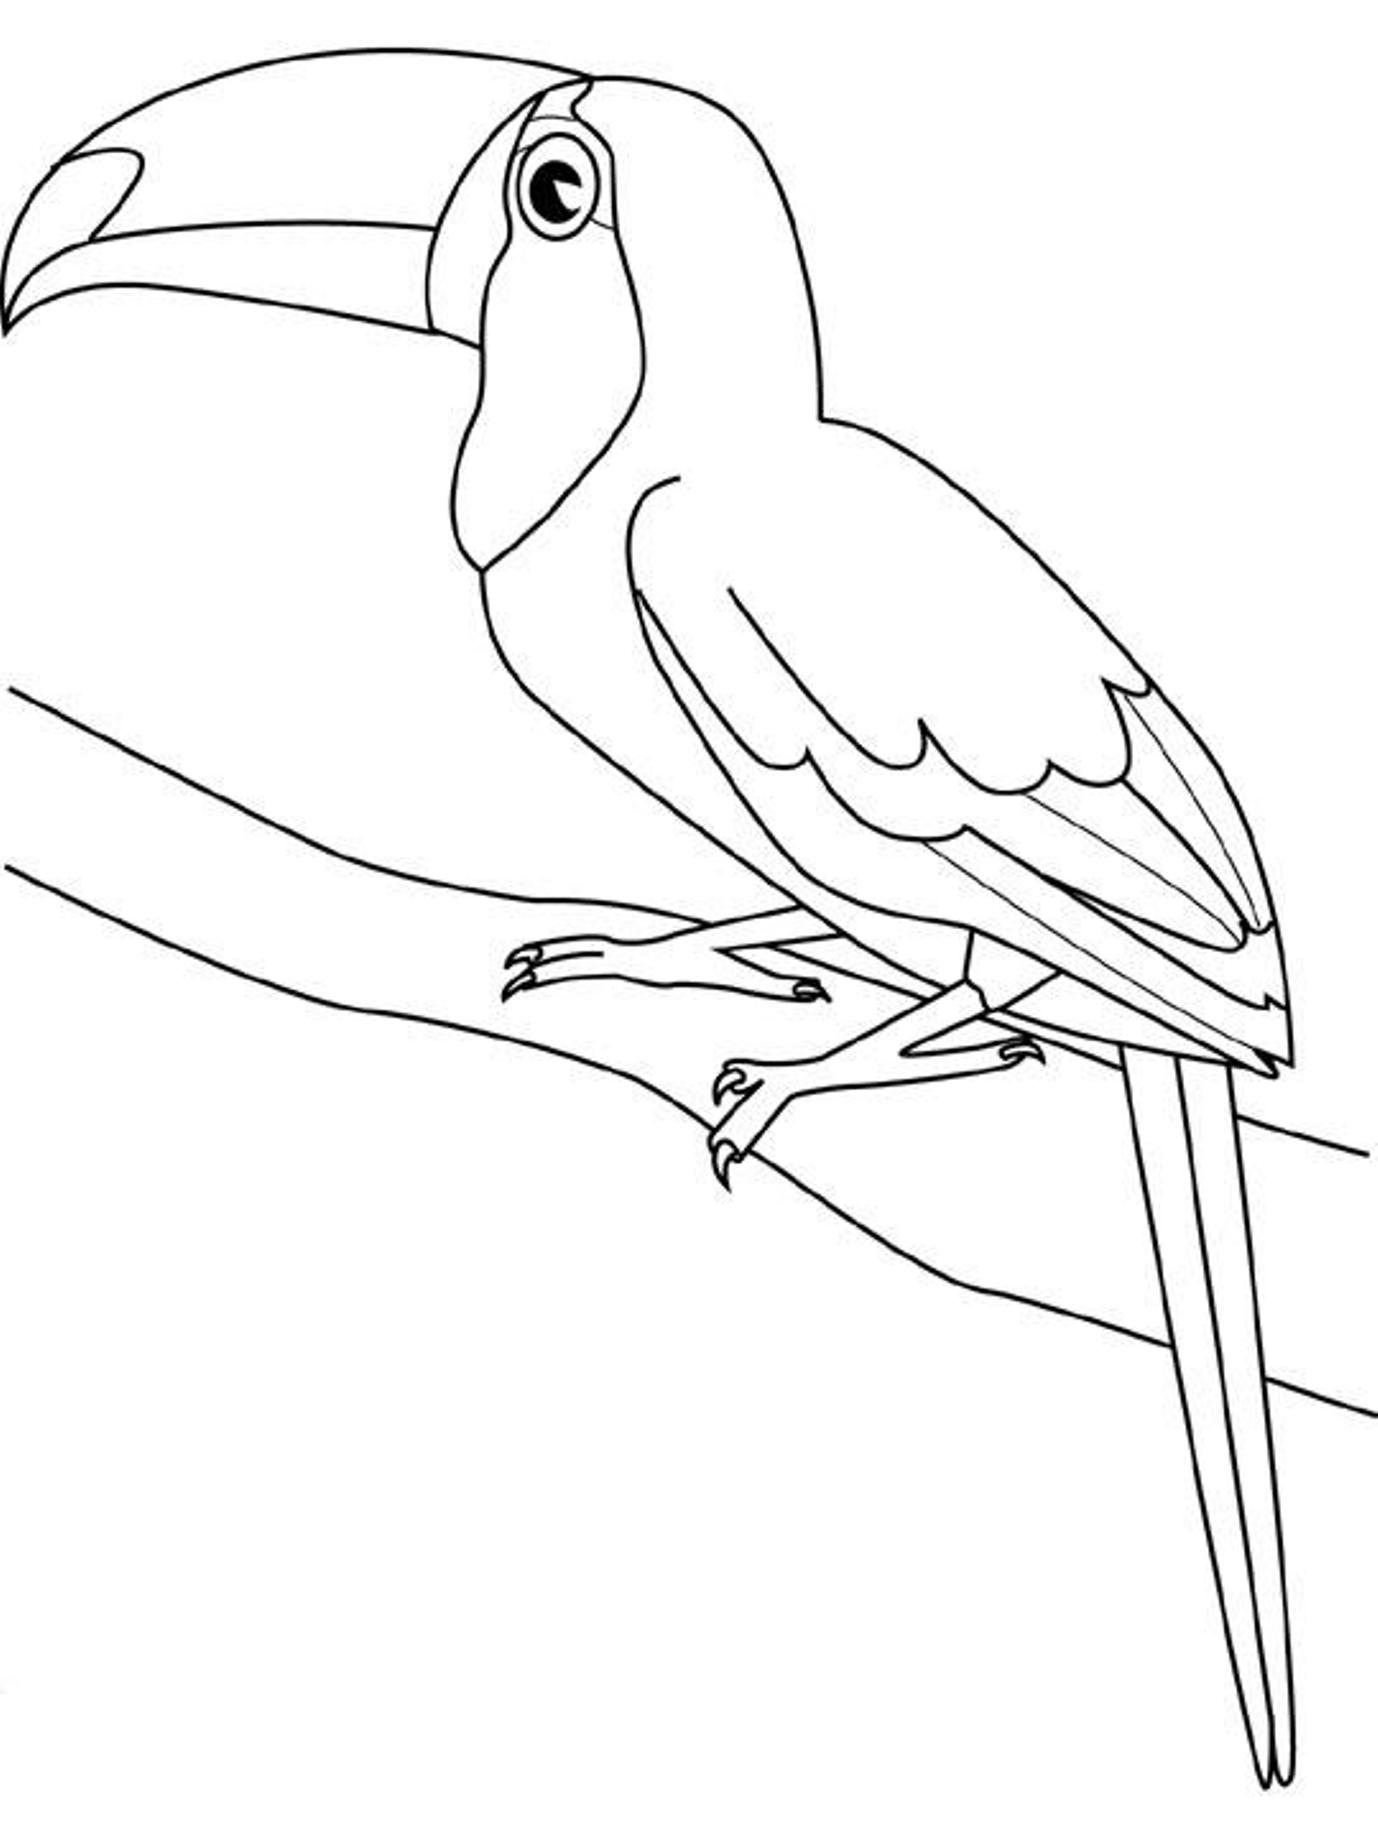 1378x1838 Toucan Coloring Page Toco Toucan Coloring Pages Hellokids